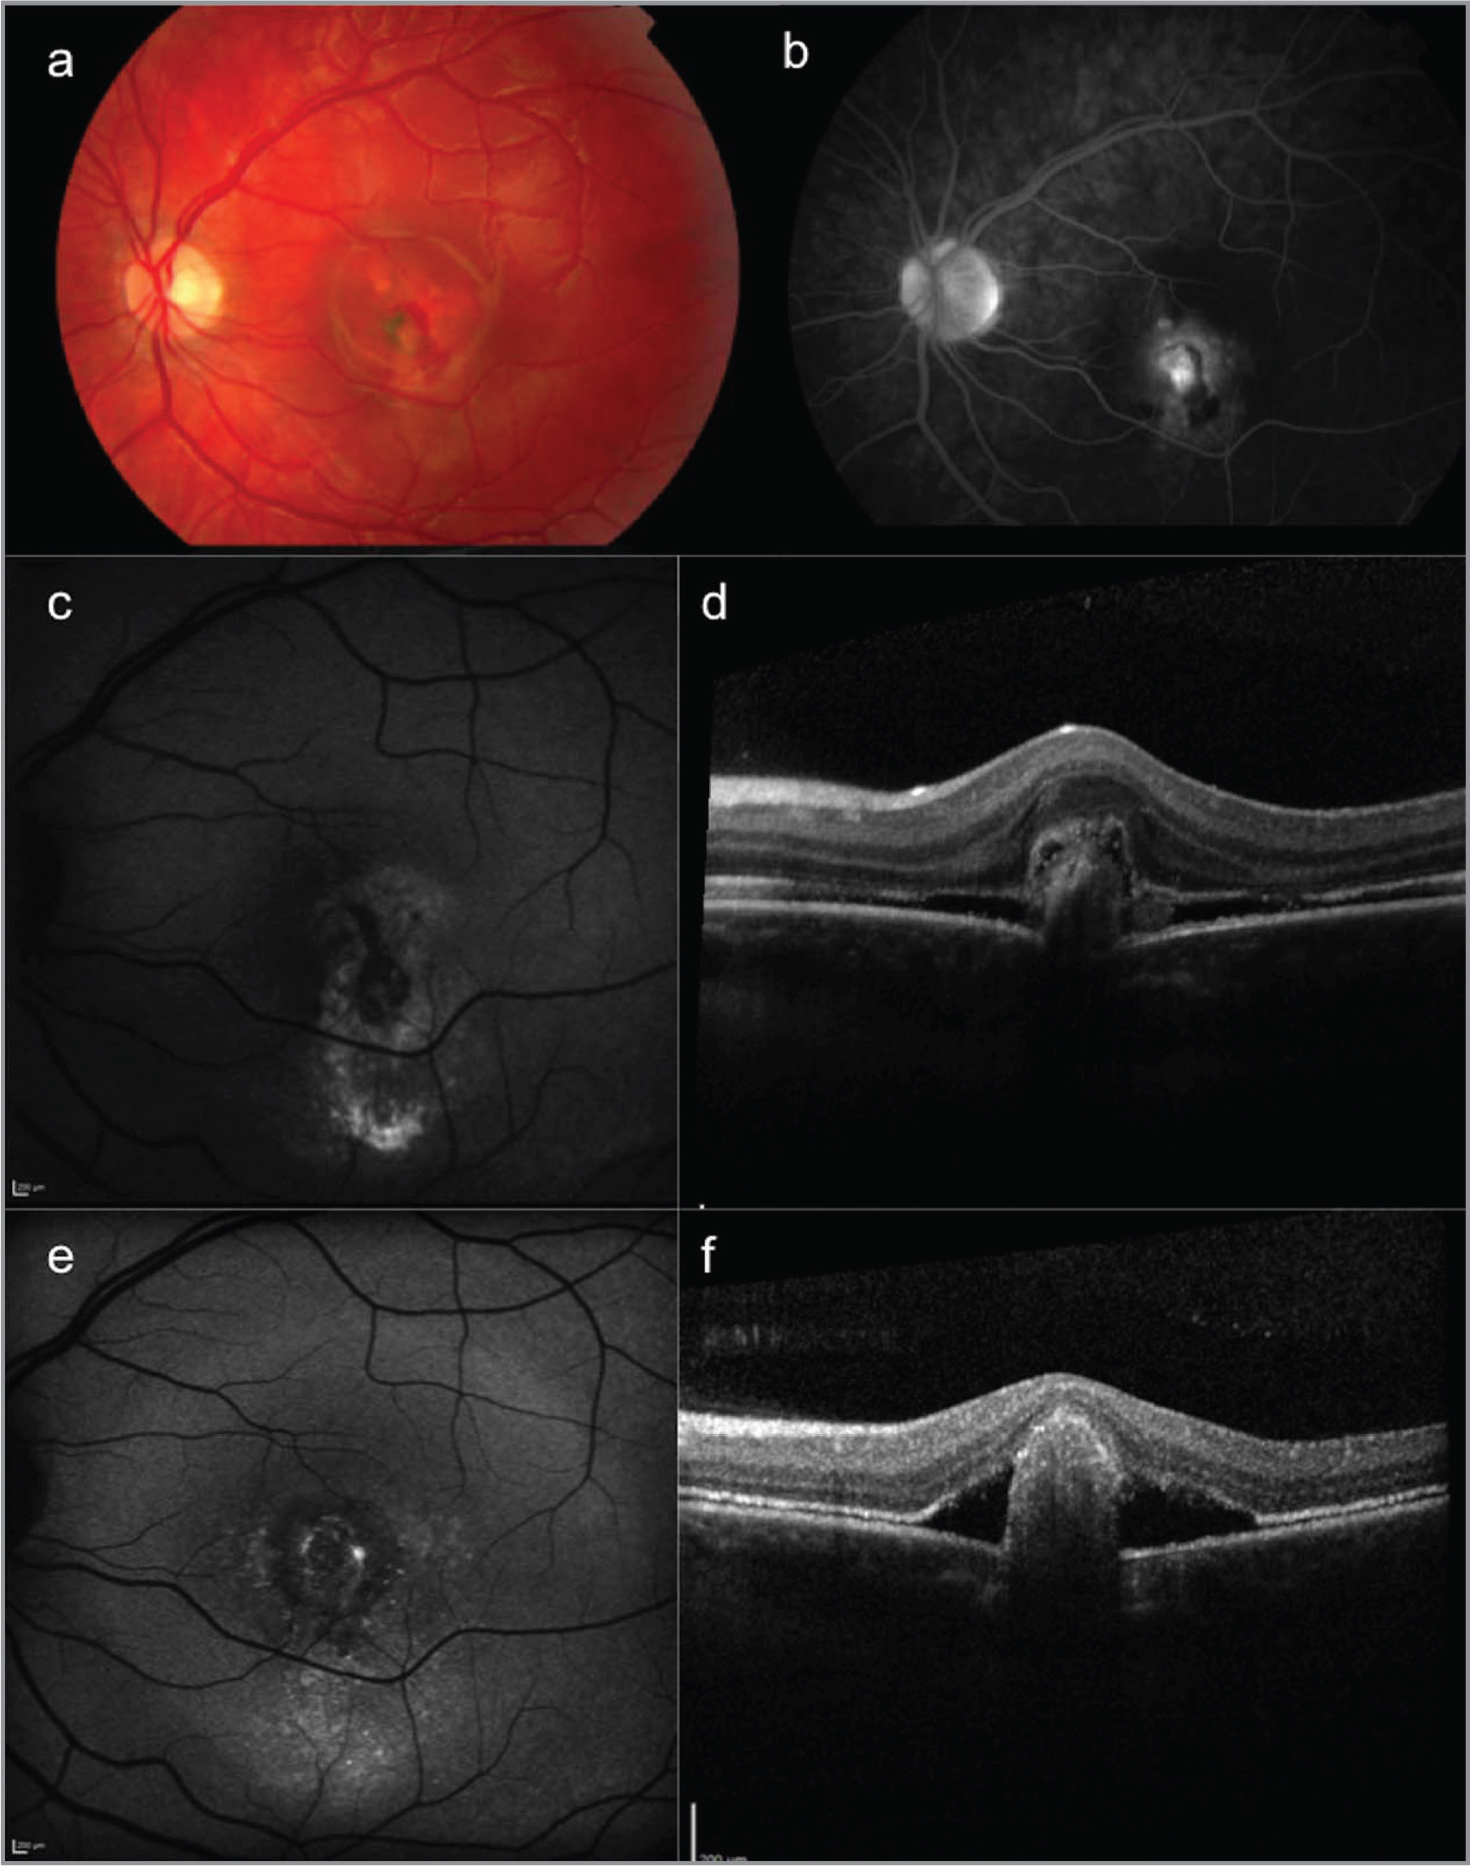 Case 2. Multimodal retinal imaging of autosomal recessive bestrophinopathy of the left eye at presentation (a–d) and after 6 years of follow-up (e, f). (a) Color fundus photograph shows macular pigment abnormalities and retinal hemorrhage. (b) Fluorescein angiography shows leakage of the fluorescein. (c) Fundus autofluorescence (FAF)imaging shows blockage of the background autofluorescence by the retinal hemorrhage surrounded by speckled hyperautofluorescent changes; (d) Spectral-domain optical coherence tomography (SD-OCT) shows ill-defined subretinal hyperreflectivity; (e) FAF after 6 years of follow-up; (f) SD-OCT shows consolidation of the subretinal hyperreflectivity.